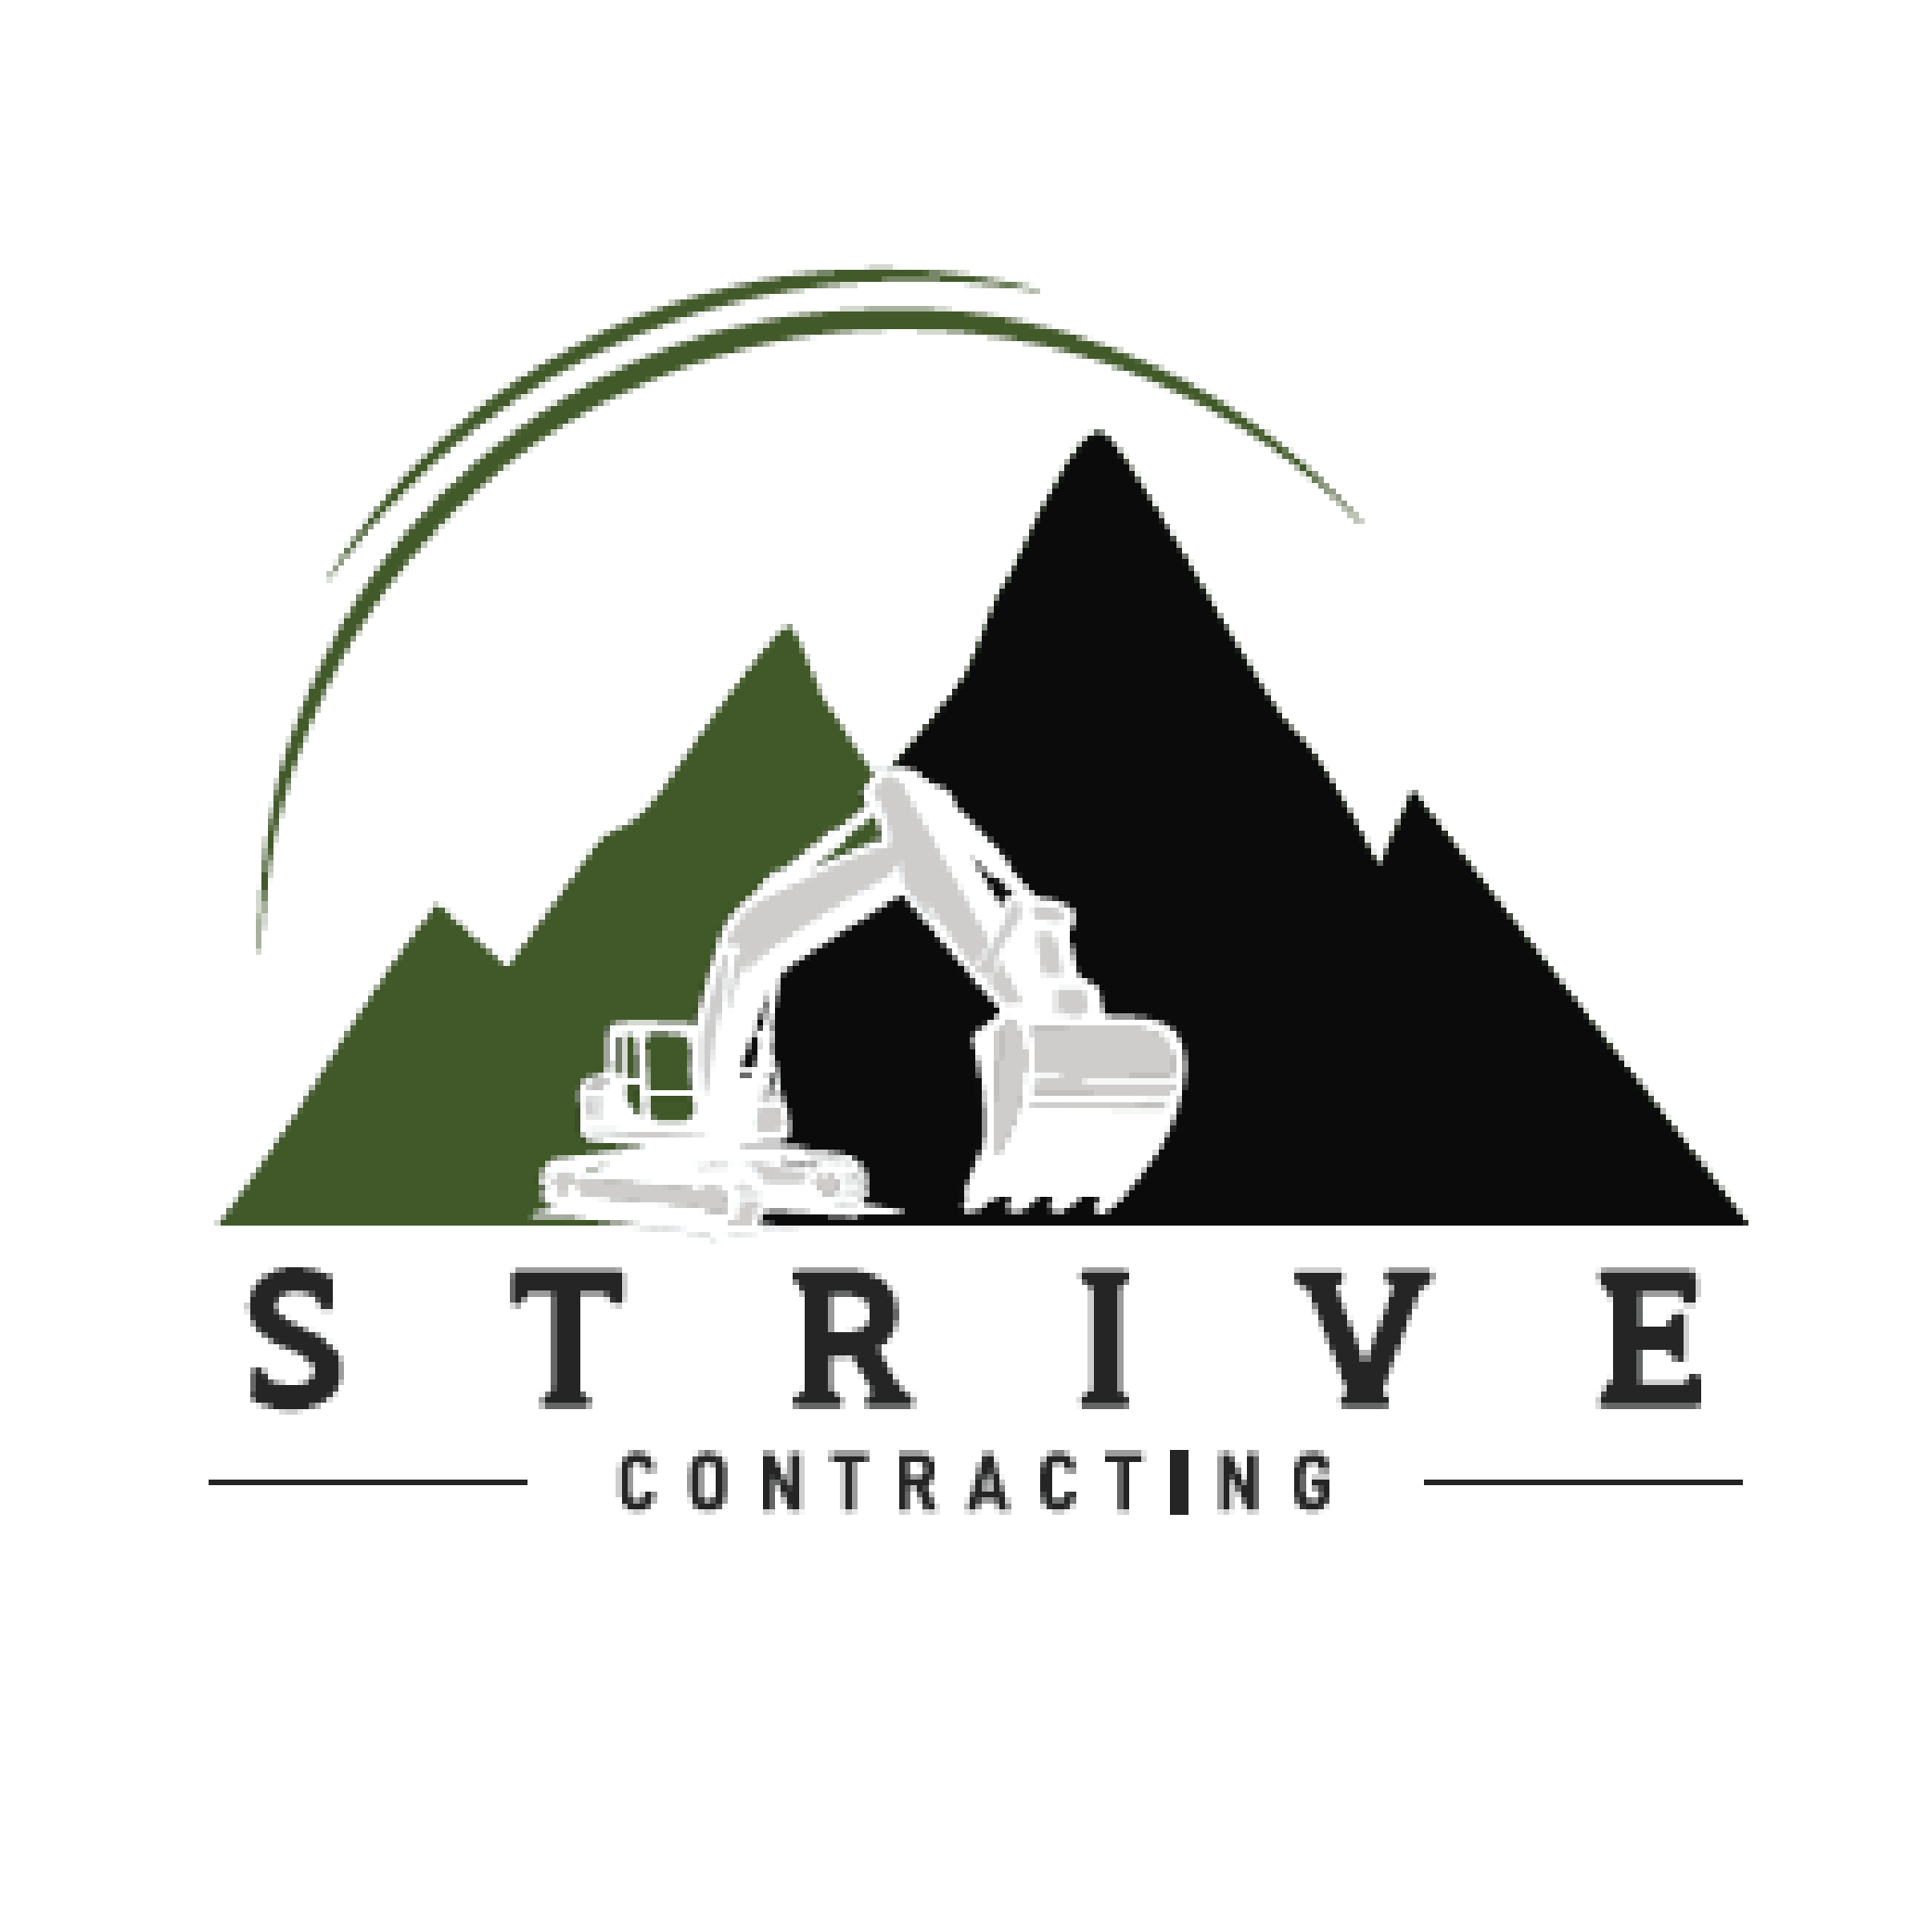 Strive Contracting